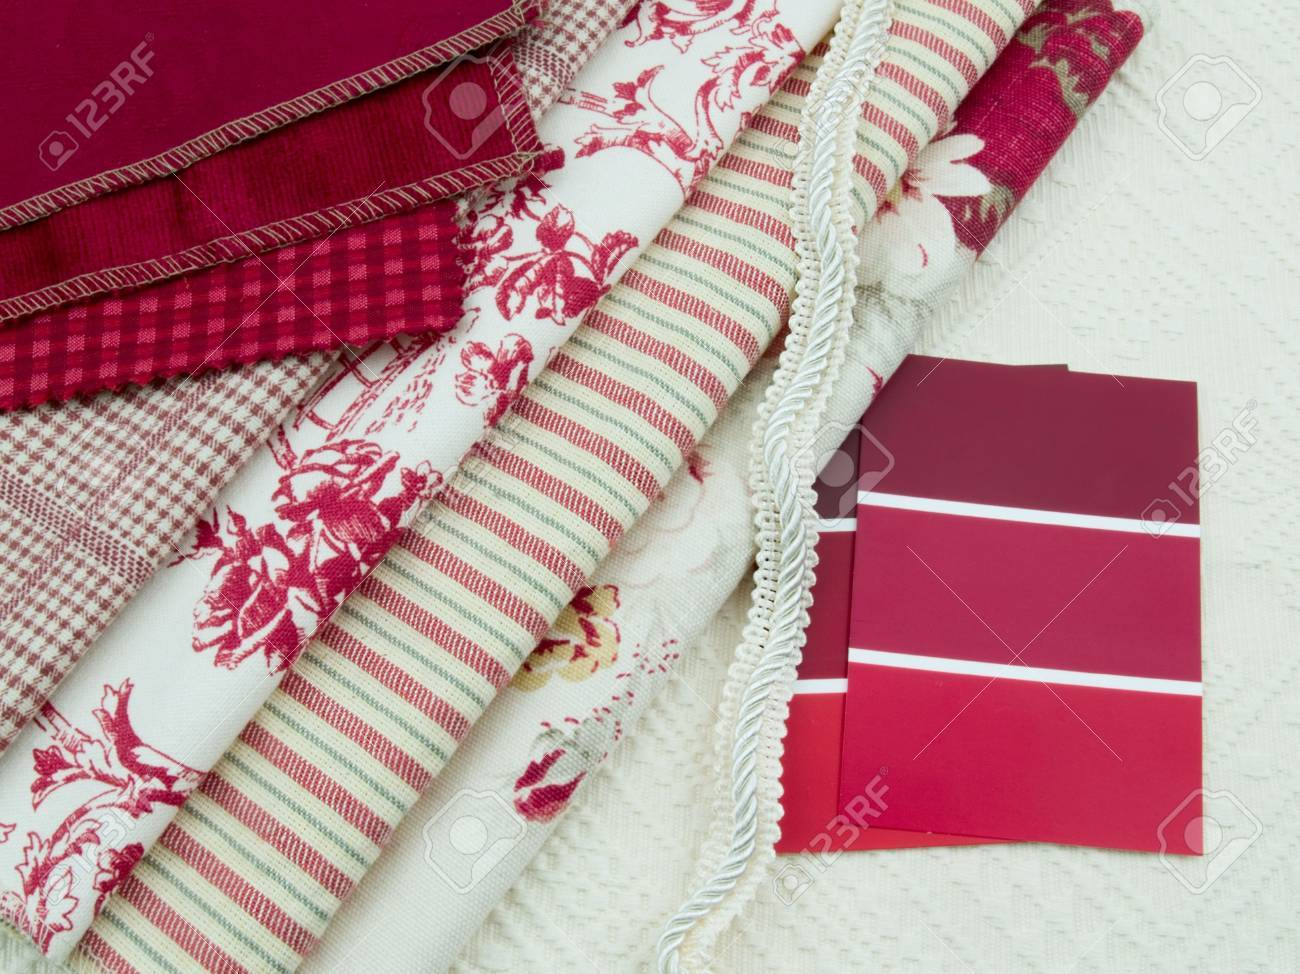 Color cards free - Red And White Interior Decoration Plan Color Cards And Textile Swatches Stock Photo 5882808